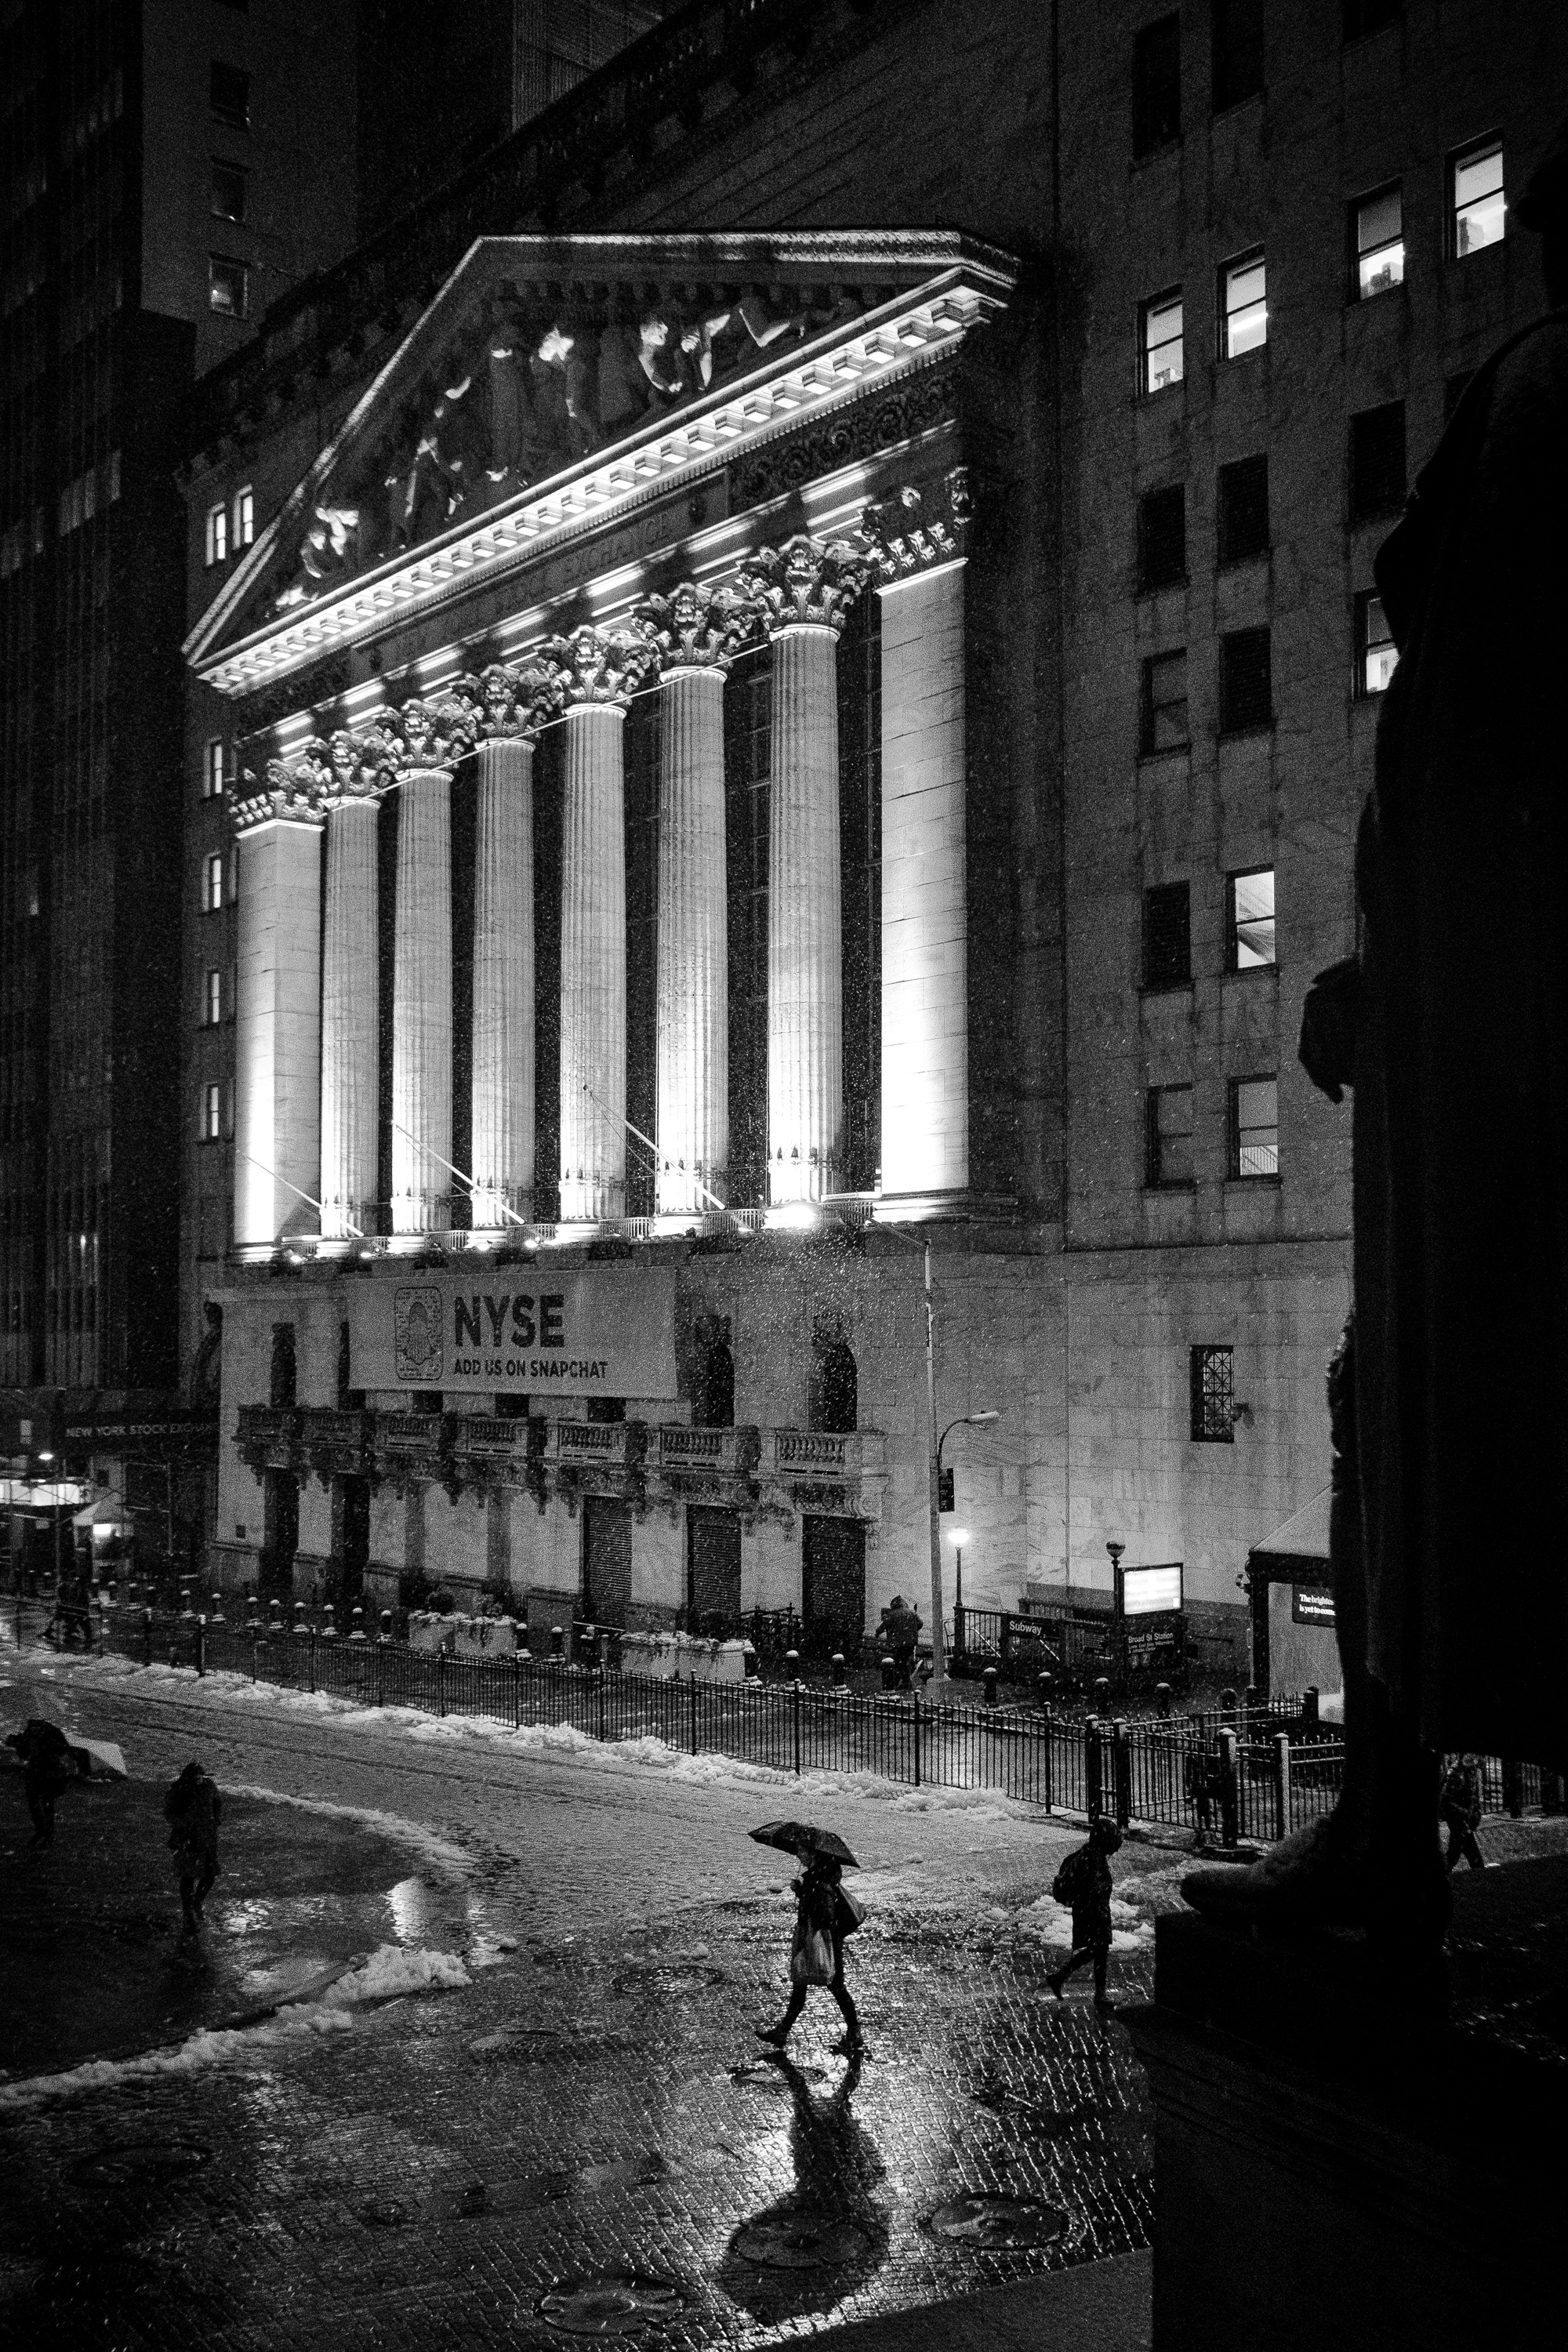 """Stock exchange snowstorm"" March 7, 2018. Wall Street, New York Fujifilm XPro2, 23mm, f/2.8, 1/125, ISO 5000"